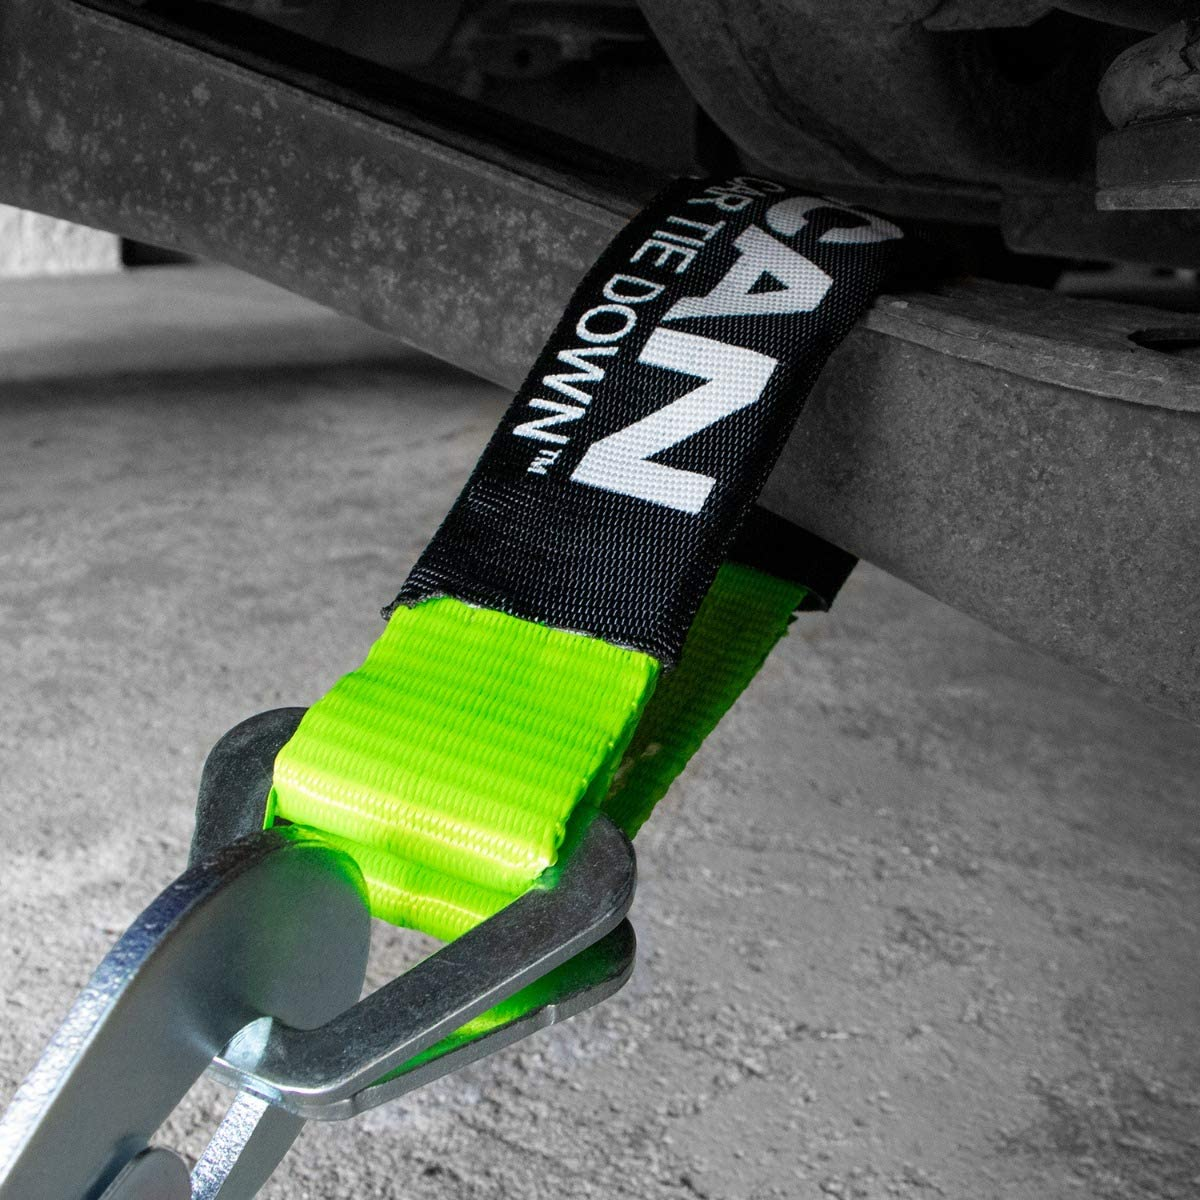 and 4 8 Snap Hook Ratchet Straps 4 VULCAN Complete Axle Strap Tie Down Kit with Snap Hook Ratchet Straps 4 36 Axle Straps High-Viz 22 Axle Straps, Includes